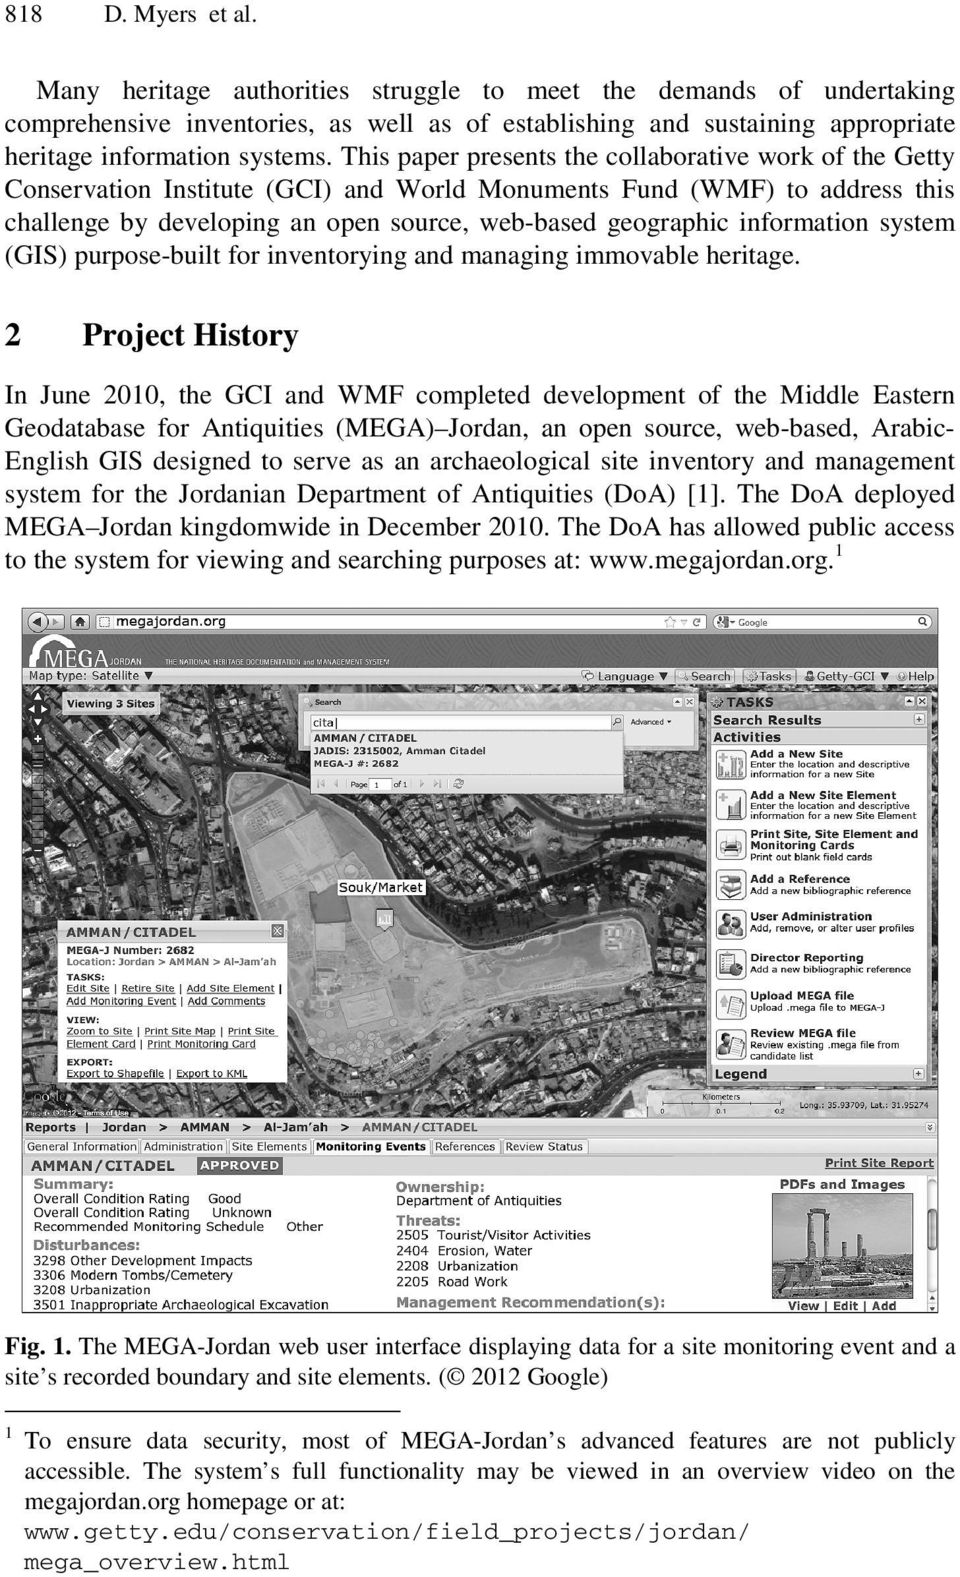 information system (GIS) purpose-built for inventorying and managing immovable heritage.